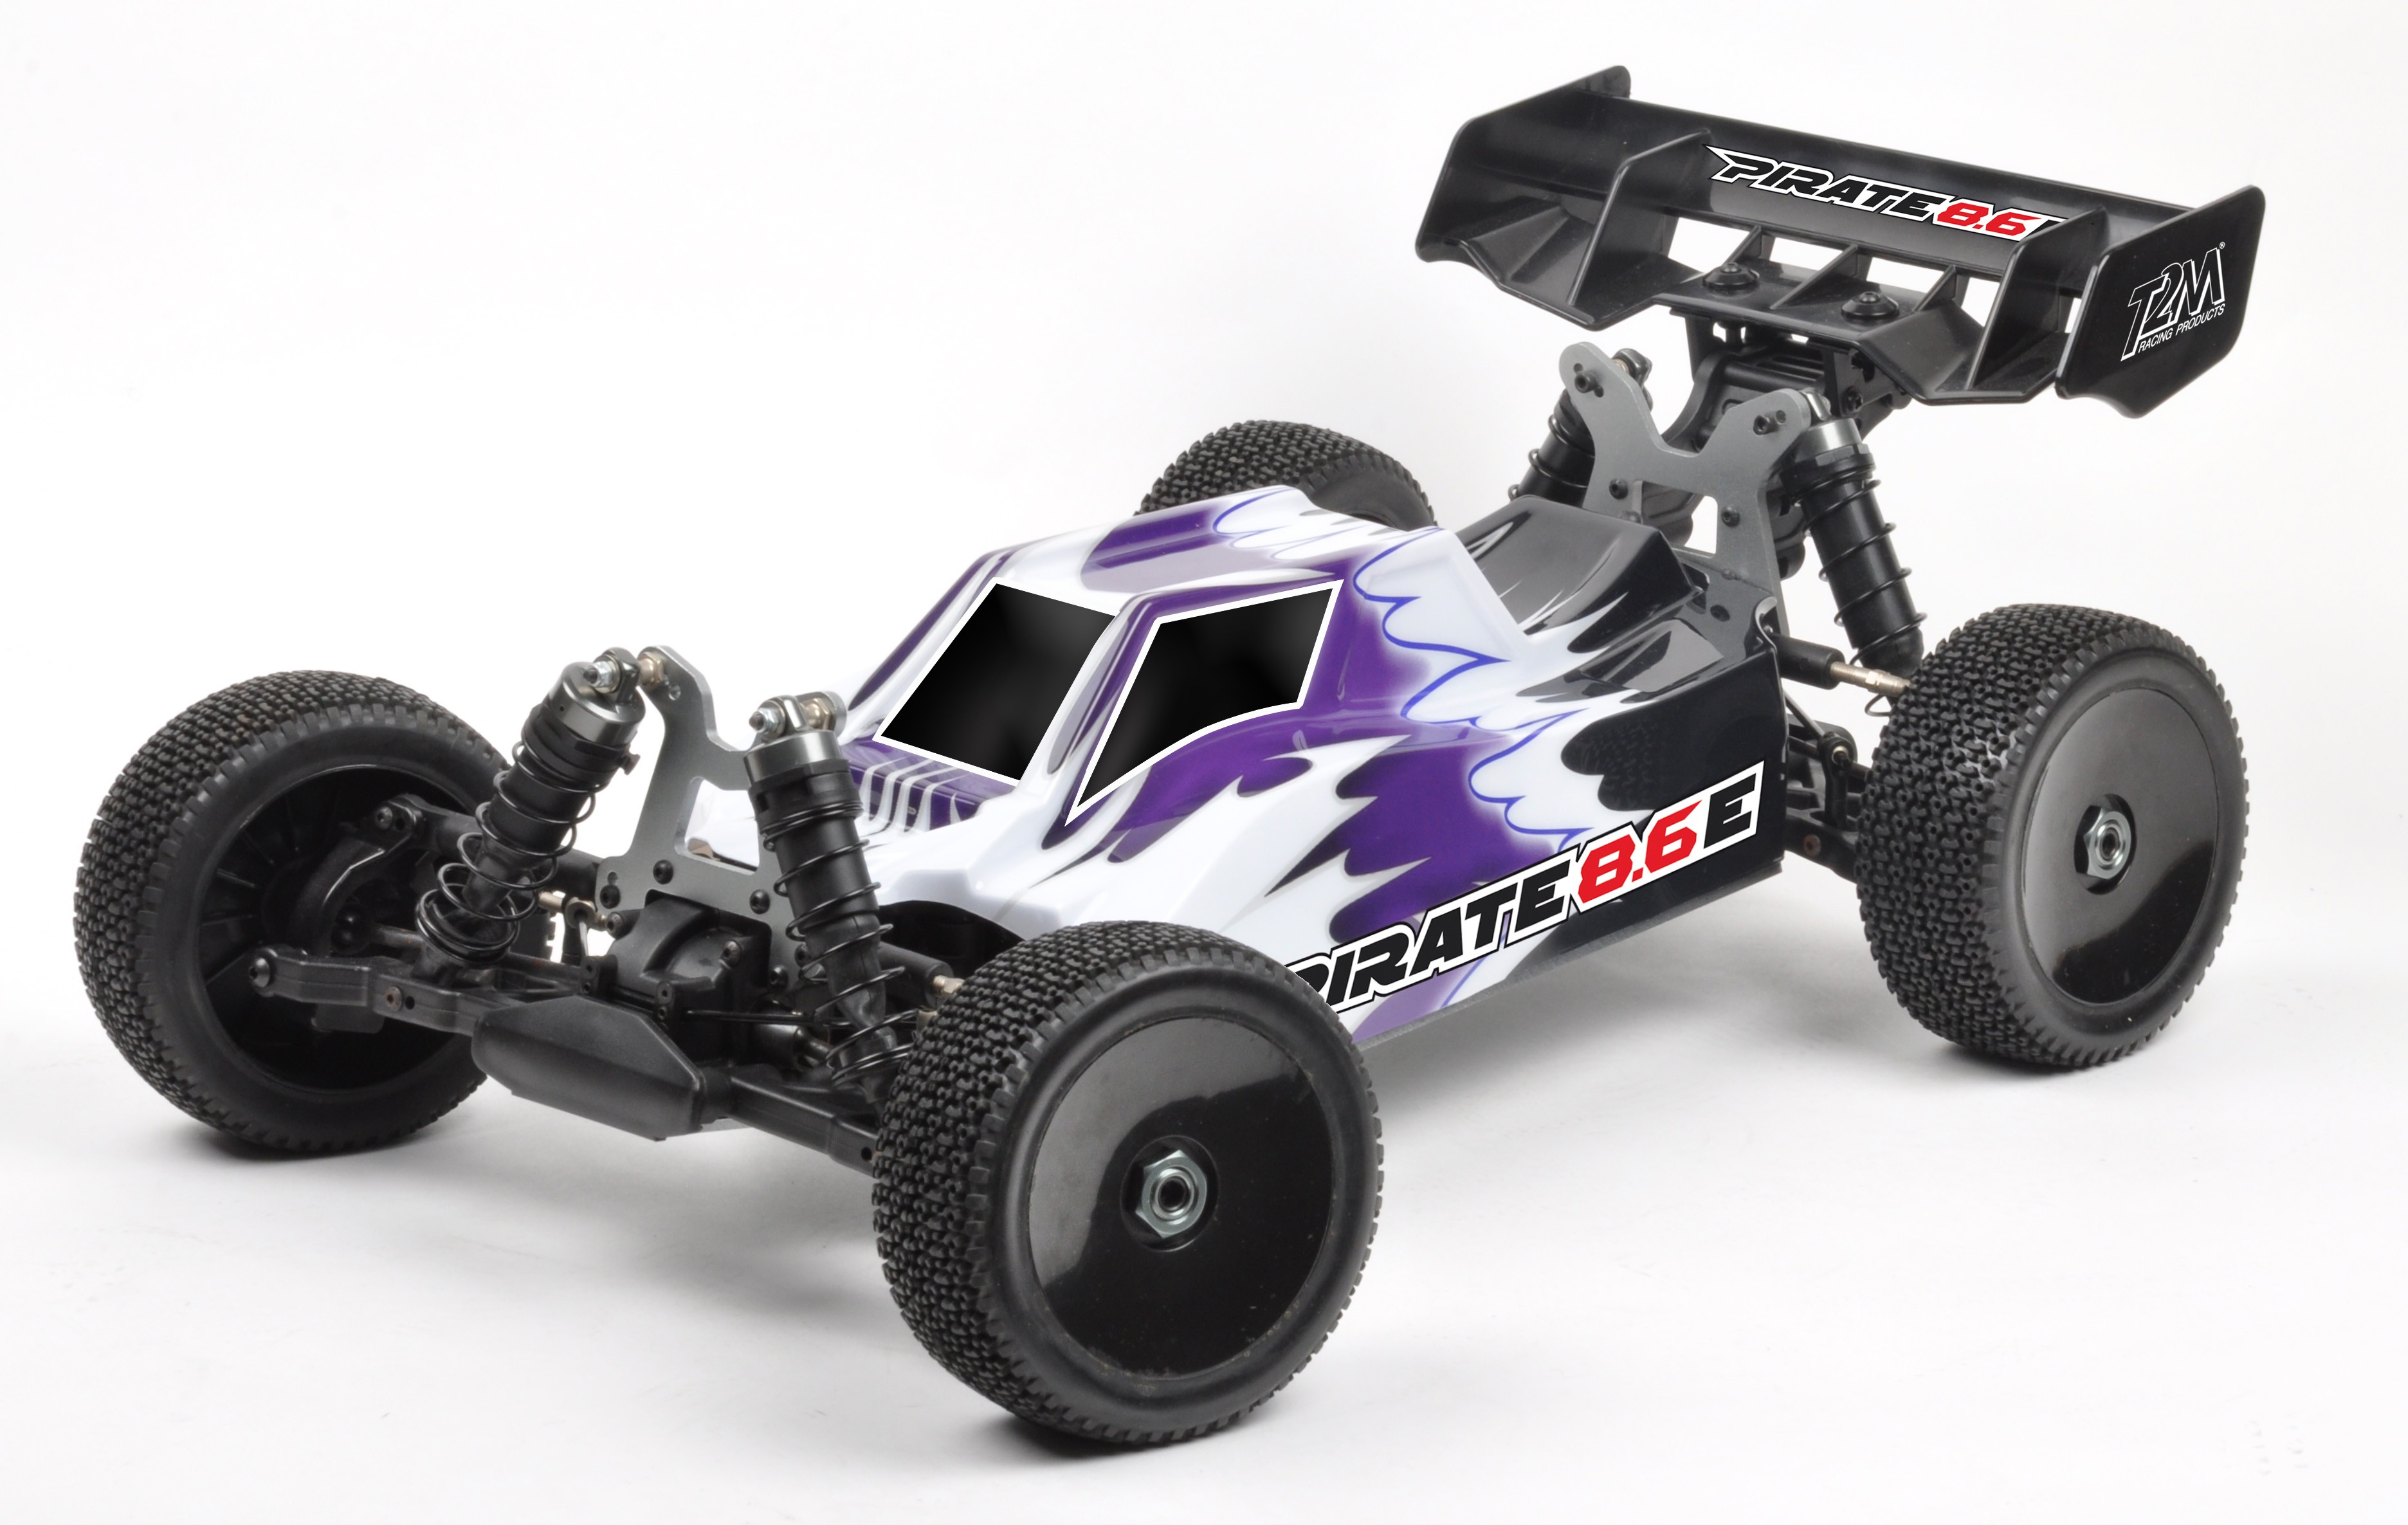 Pirate OFF ROAD Buggy 4x4 1/8 RC Waterproof